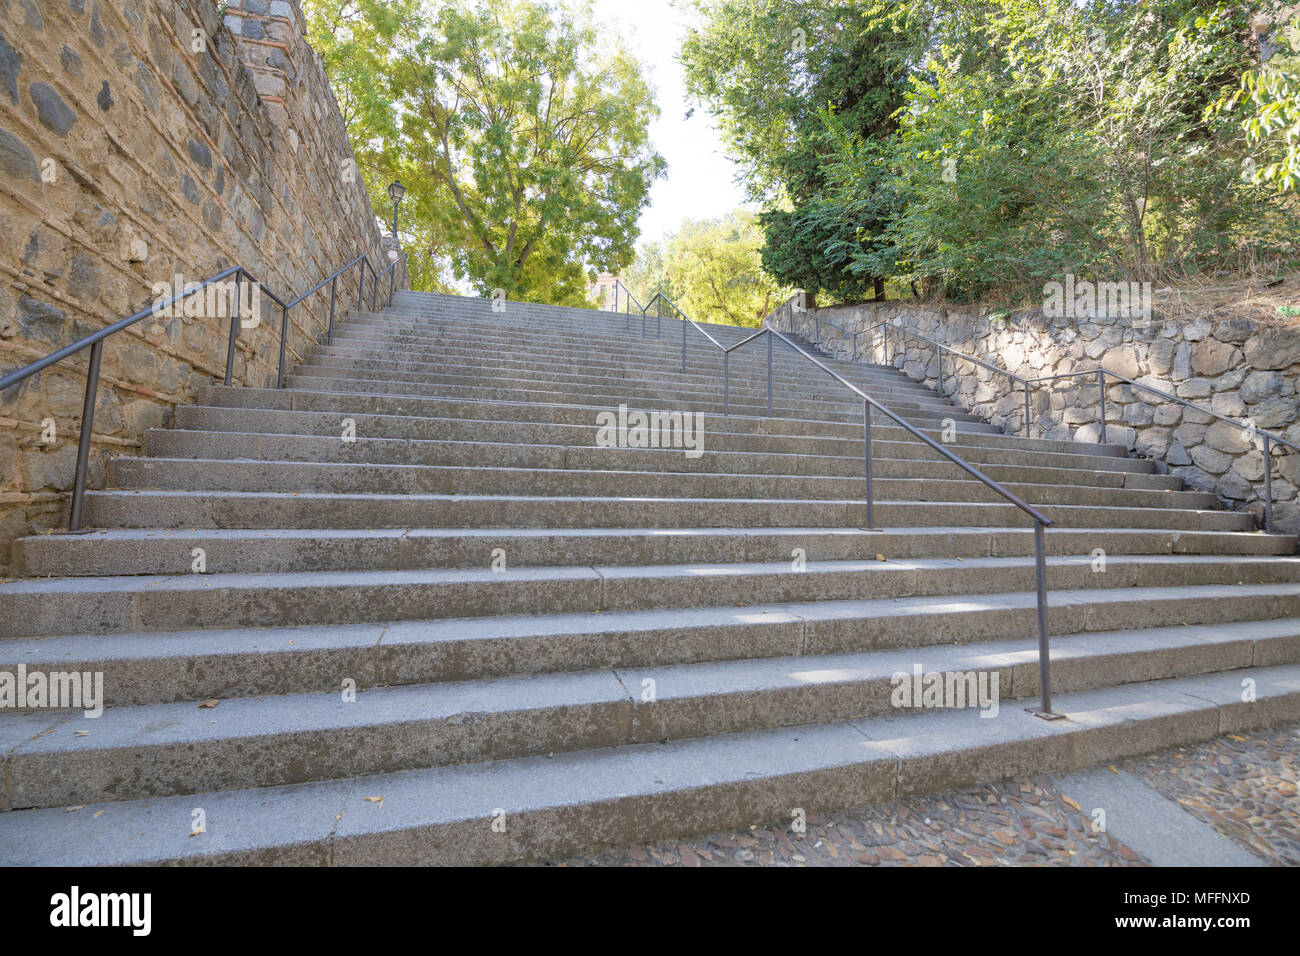 stone stairs with metal balusters going up in Toledo city, Spain, Europe Stock Photo